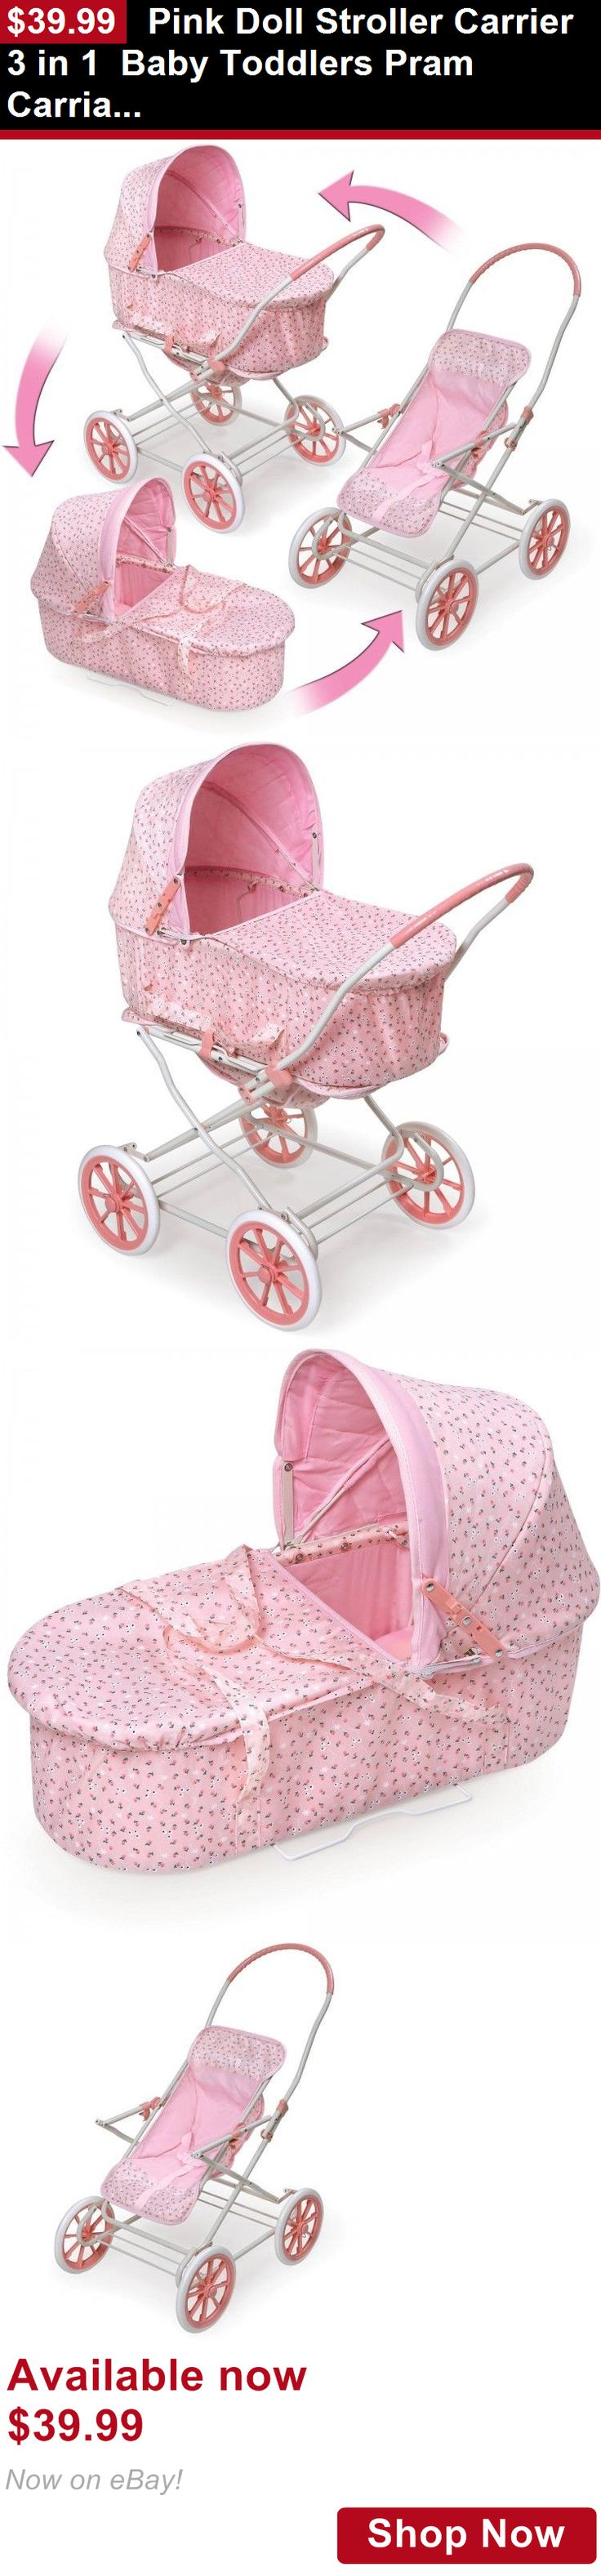 Strollers: Pink Doll Stroller Carrier 3 In 1 Baby Toddlers Pram Carriage Toy Girls BUY IT NOW ONLY: $39.99